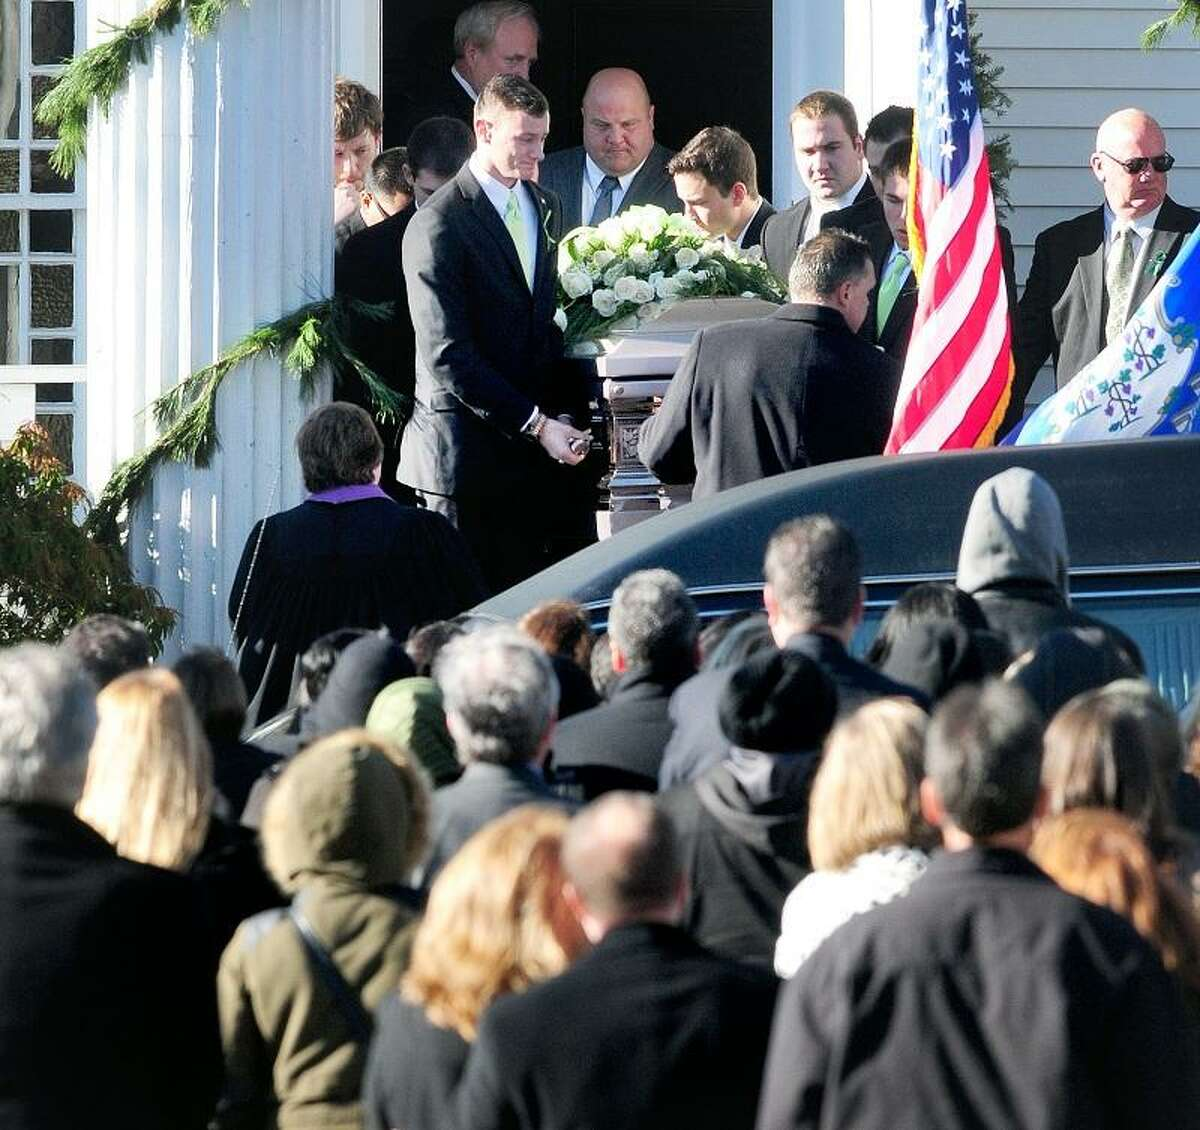 Pallbearers carry the casket of Victoria Soto from the Lordship Community Church in Stratford after funeral services on 12/19/2012. Photo by Arnold Gold/New Haven Register